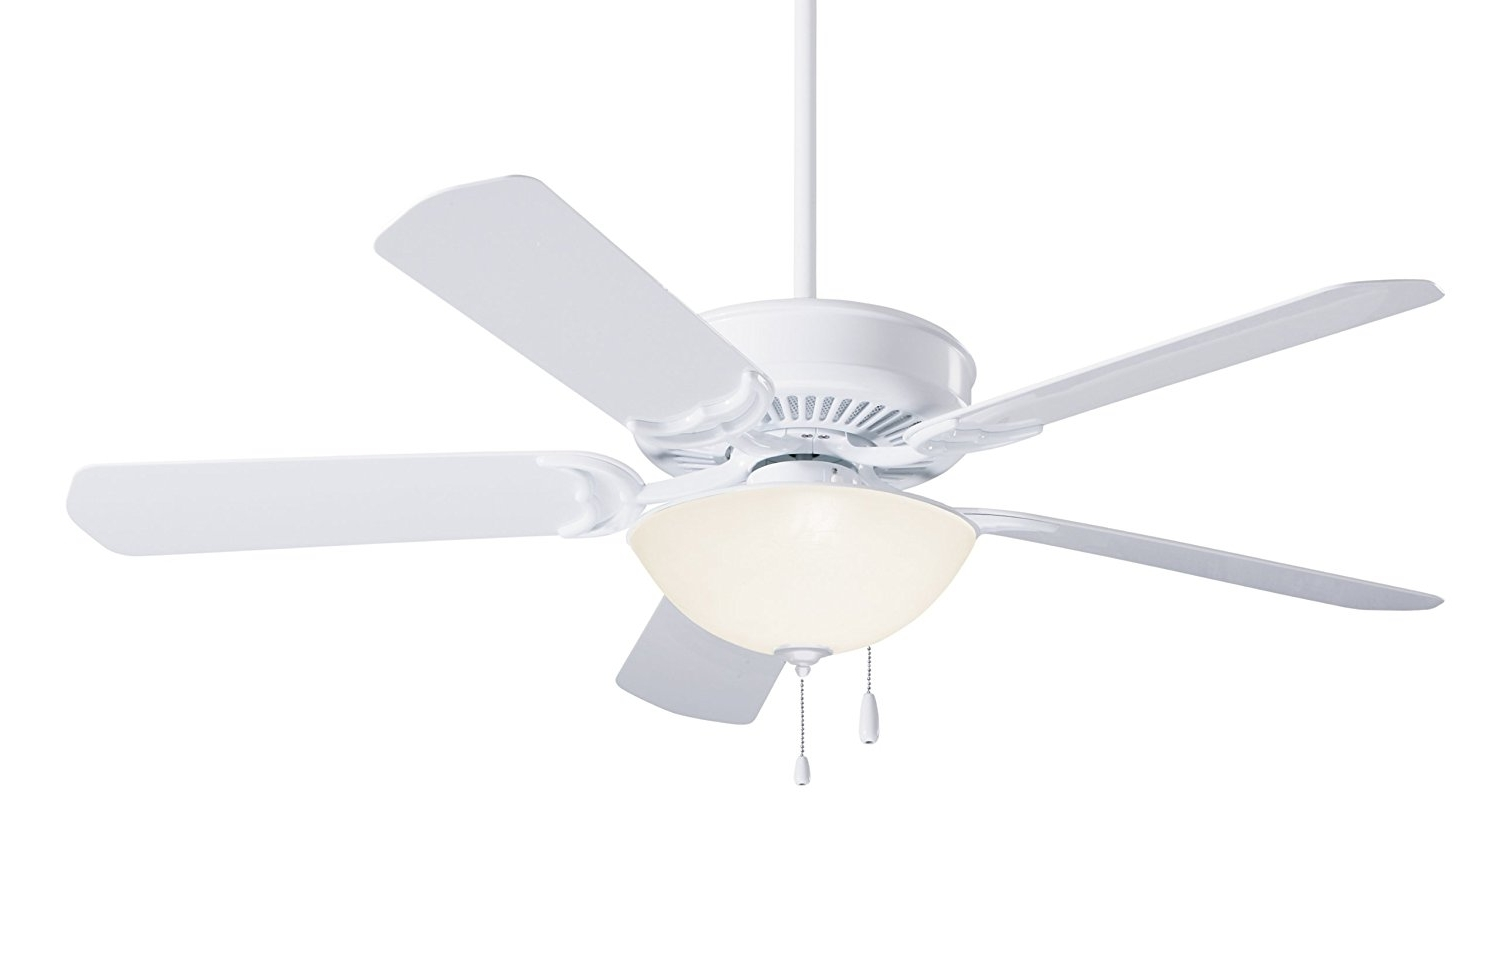 Well Known Ceiling Fan: Breathtaking Ceiling Fan Cfm Ideas Ceiling Fans With Throughout Outdoor Ceiling Fans With High Cfm (View 19 of 20)